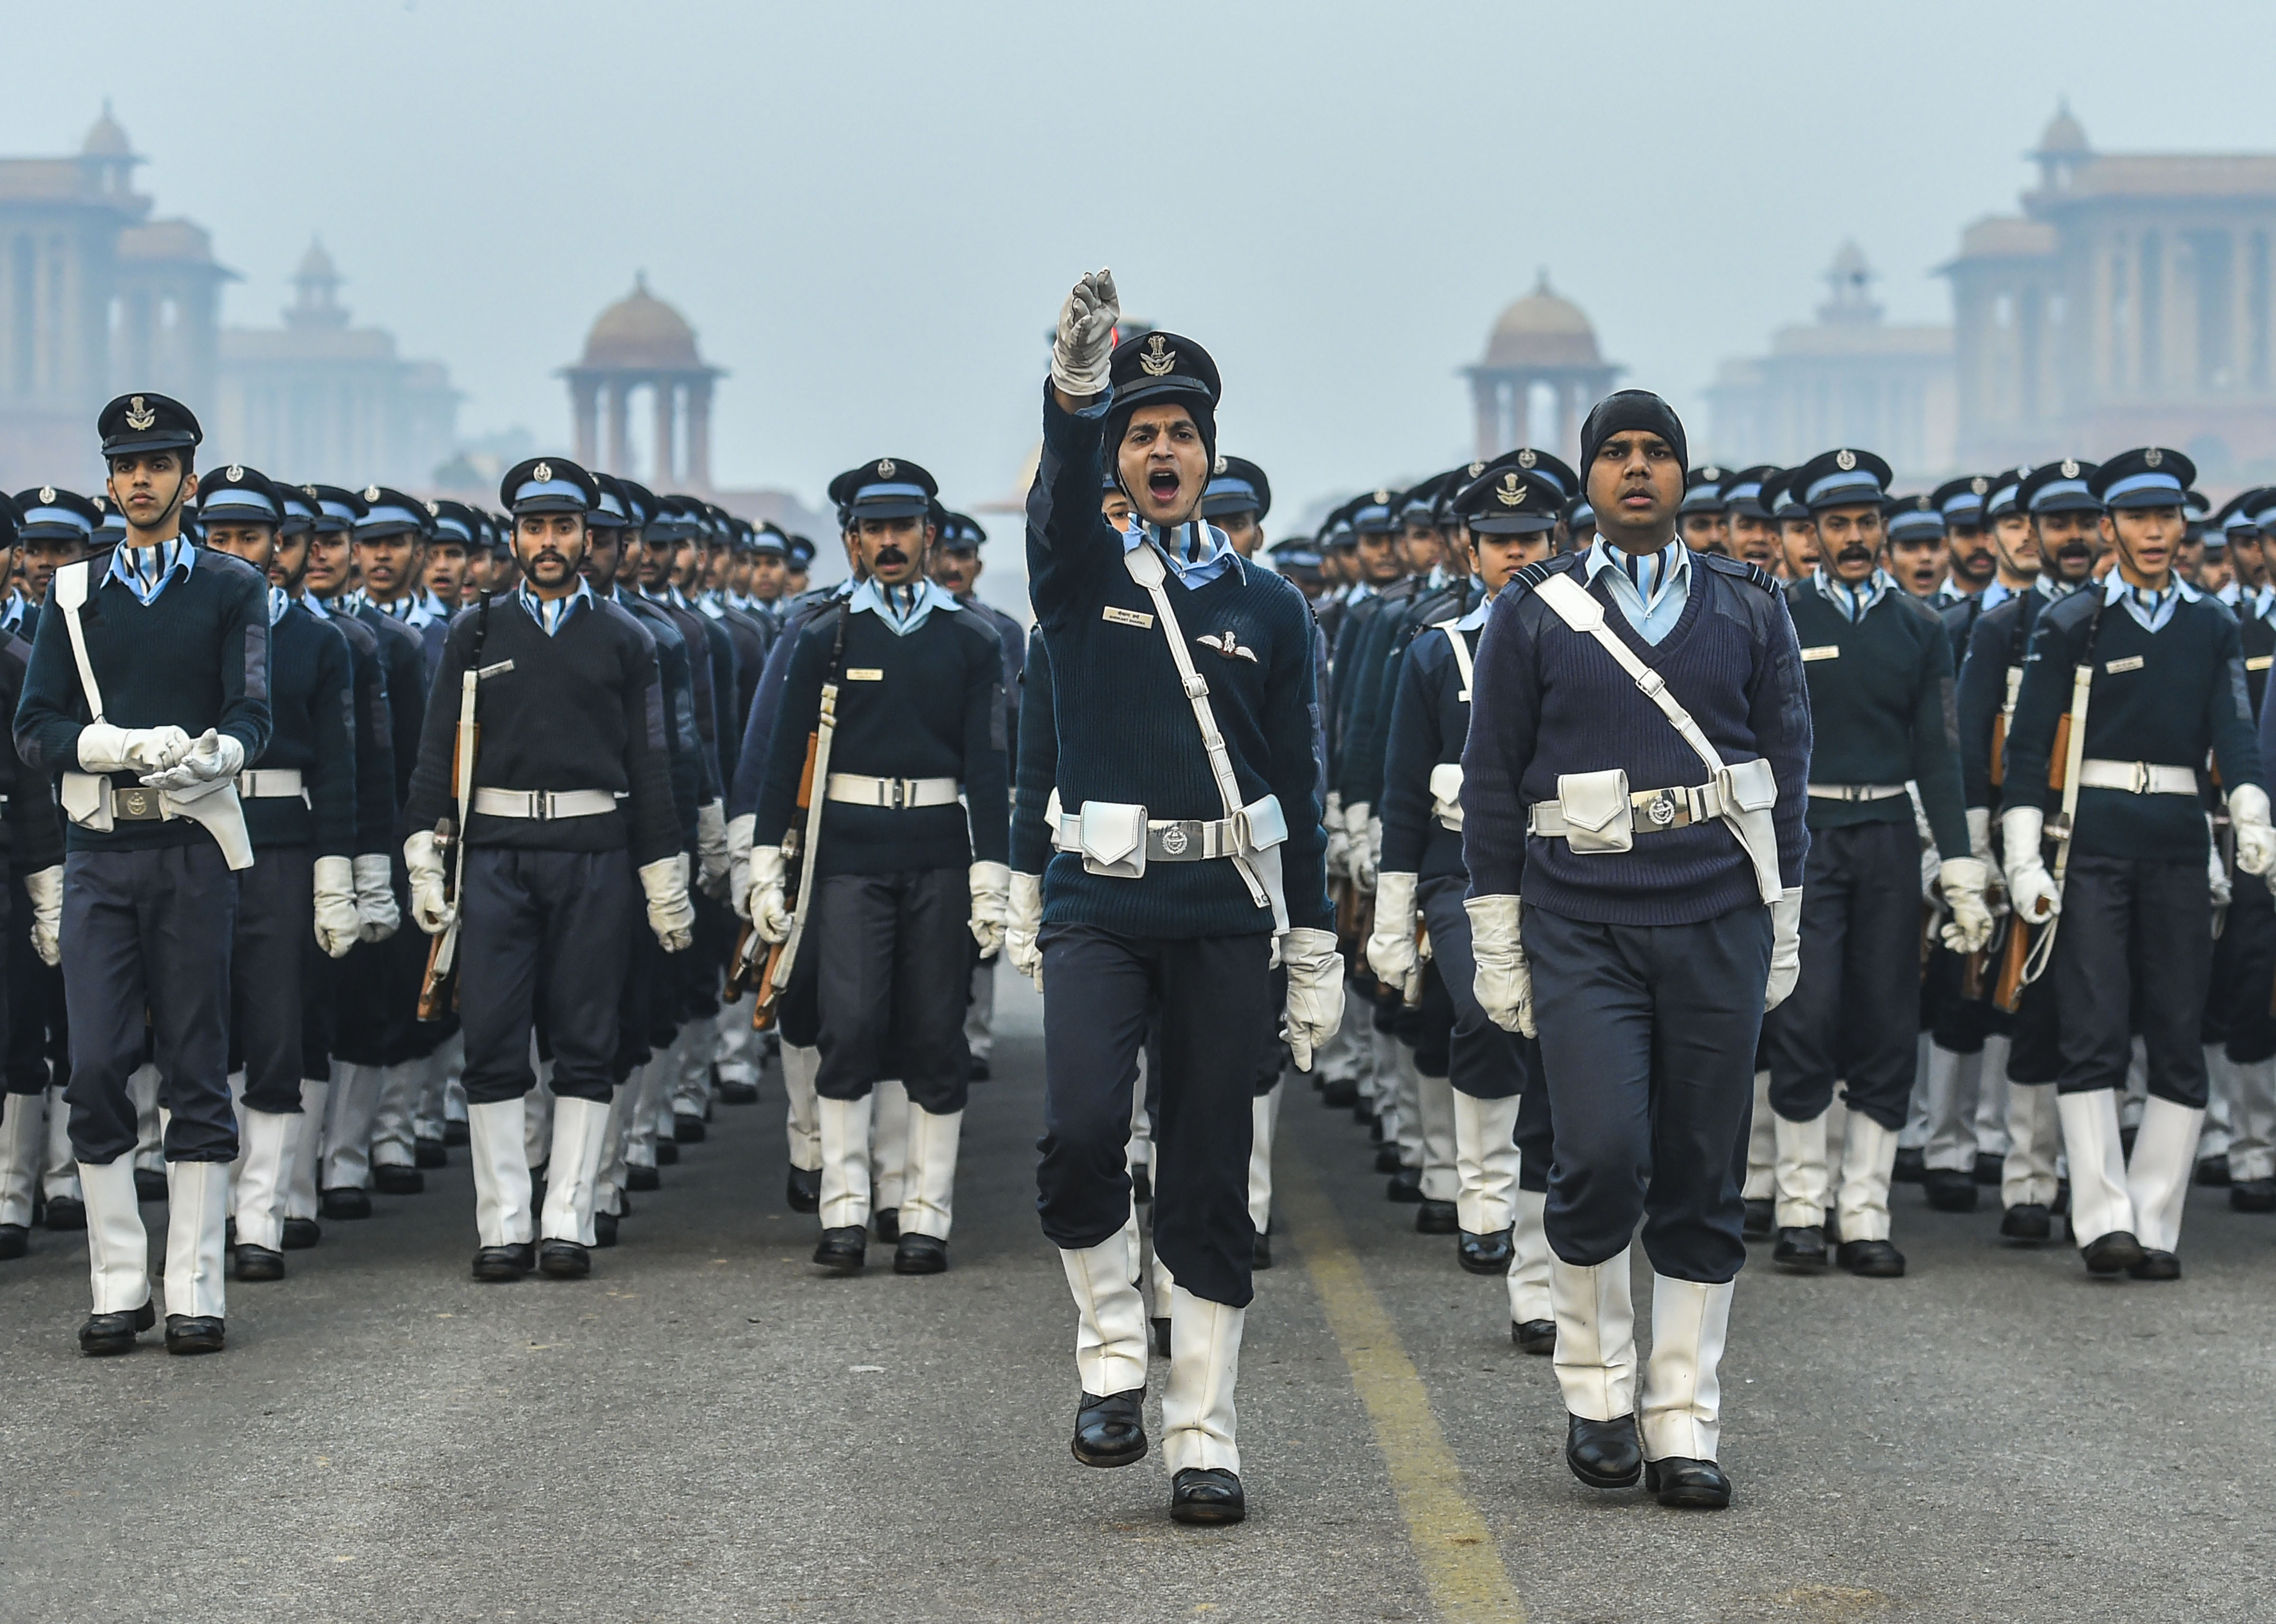 Indian Air Force personnel during the rehearsal for the upcoming Republic Day parade, on a cold, winter morning at Rajpath in New Delhi - PTI